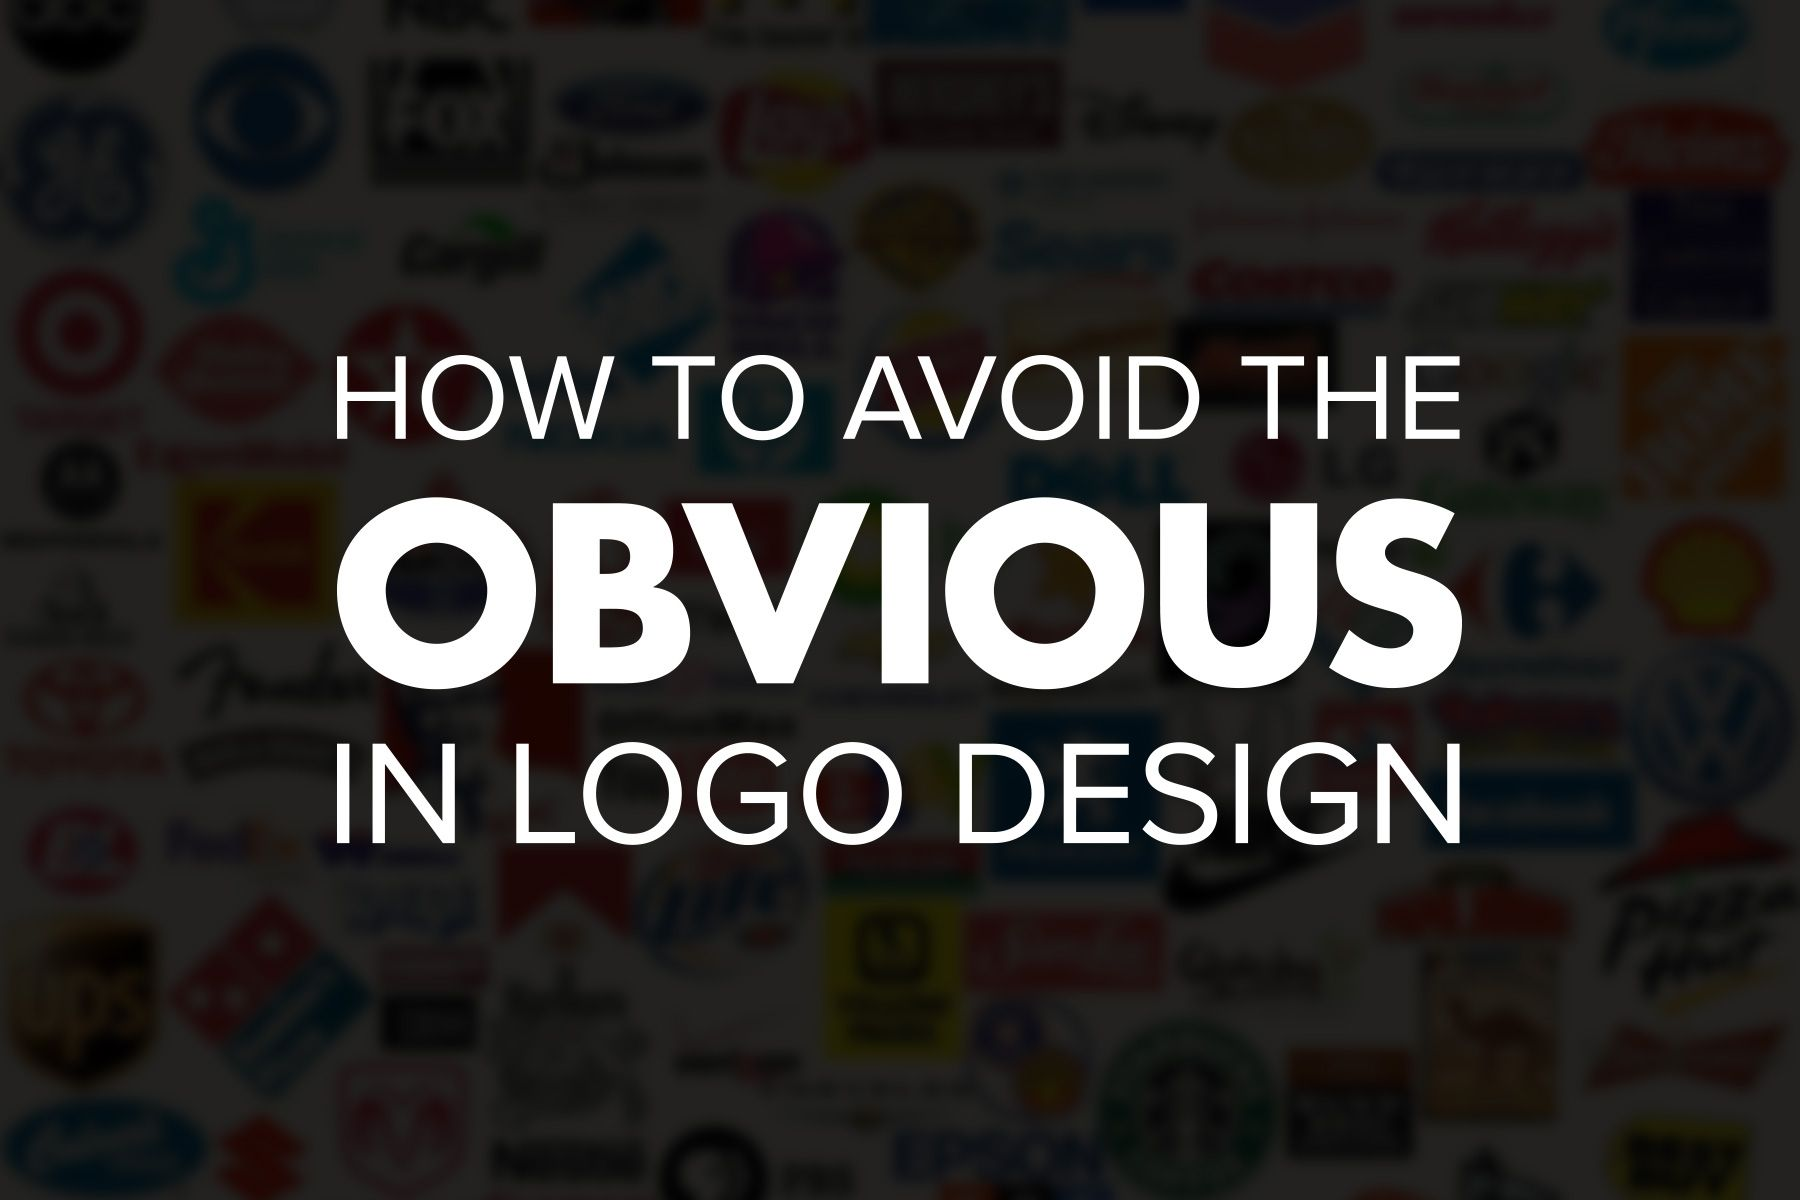 How to Avoid the Obvious in Logo Design